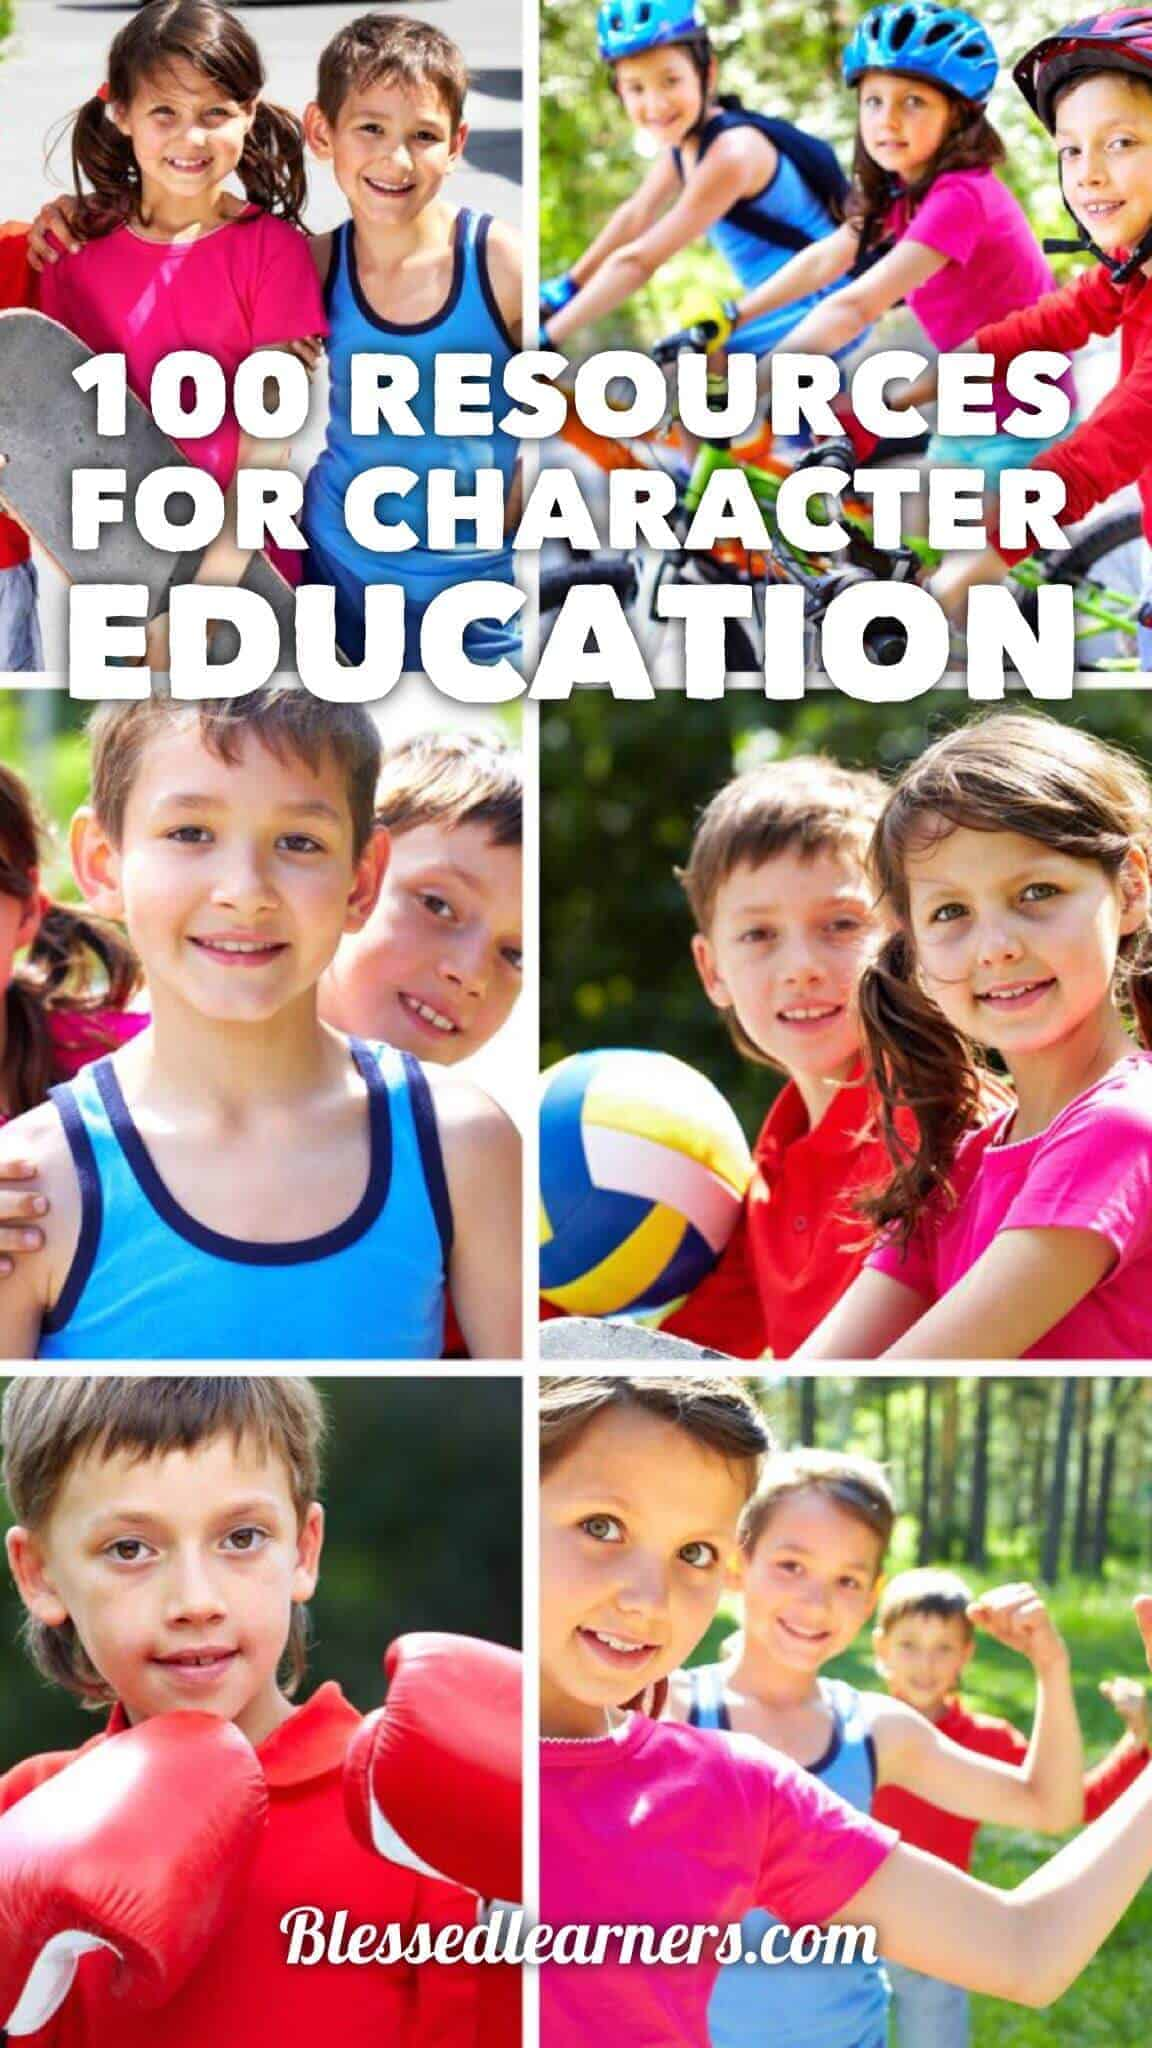 100 Resources for Character Education